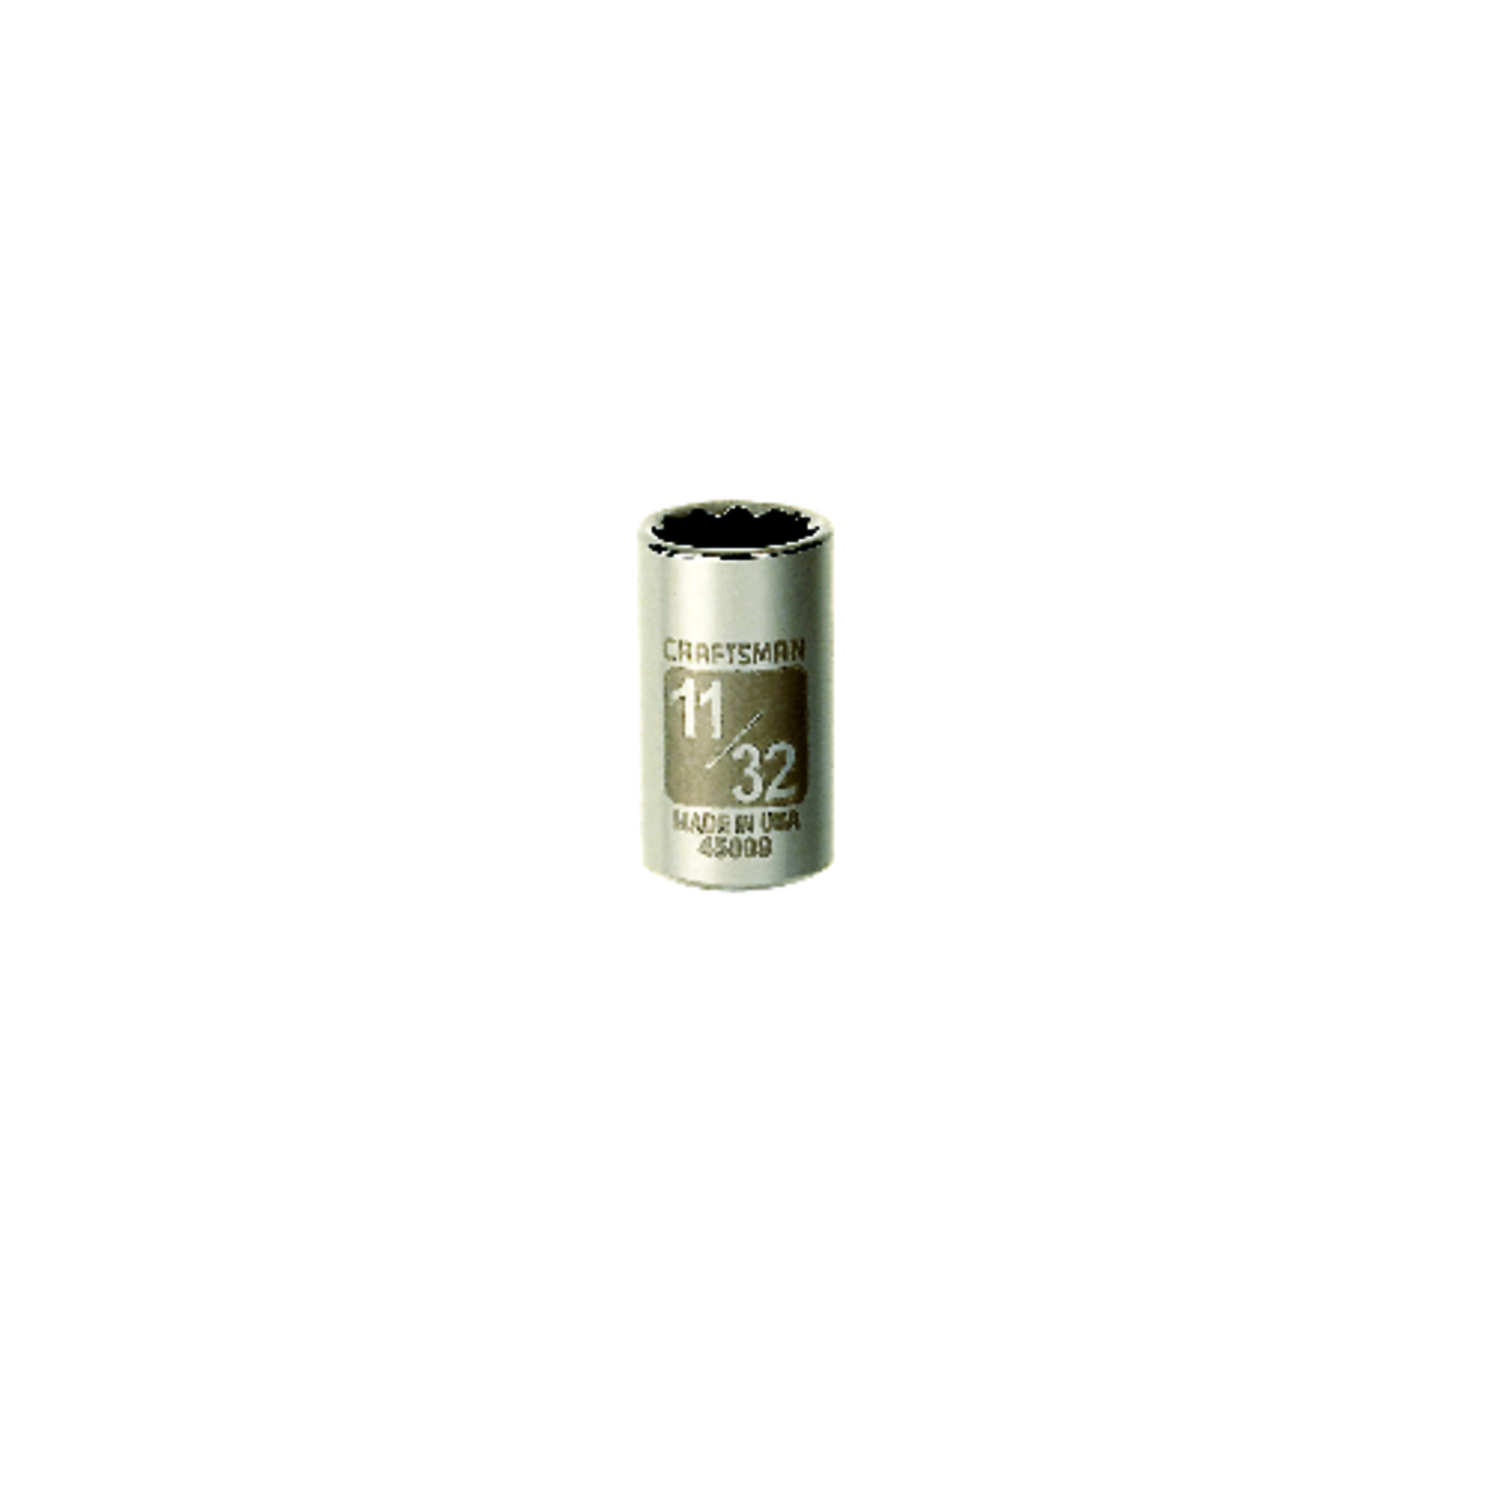 Craftsman  11/32 in.  x 1/4 in. drive  SAE  12 Point Standard  Socket  1 pc.